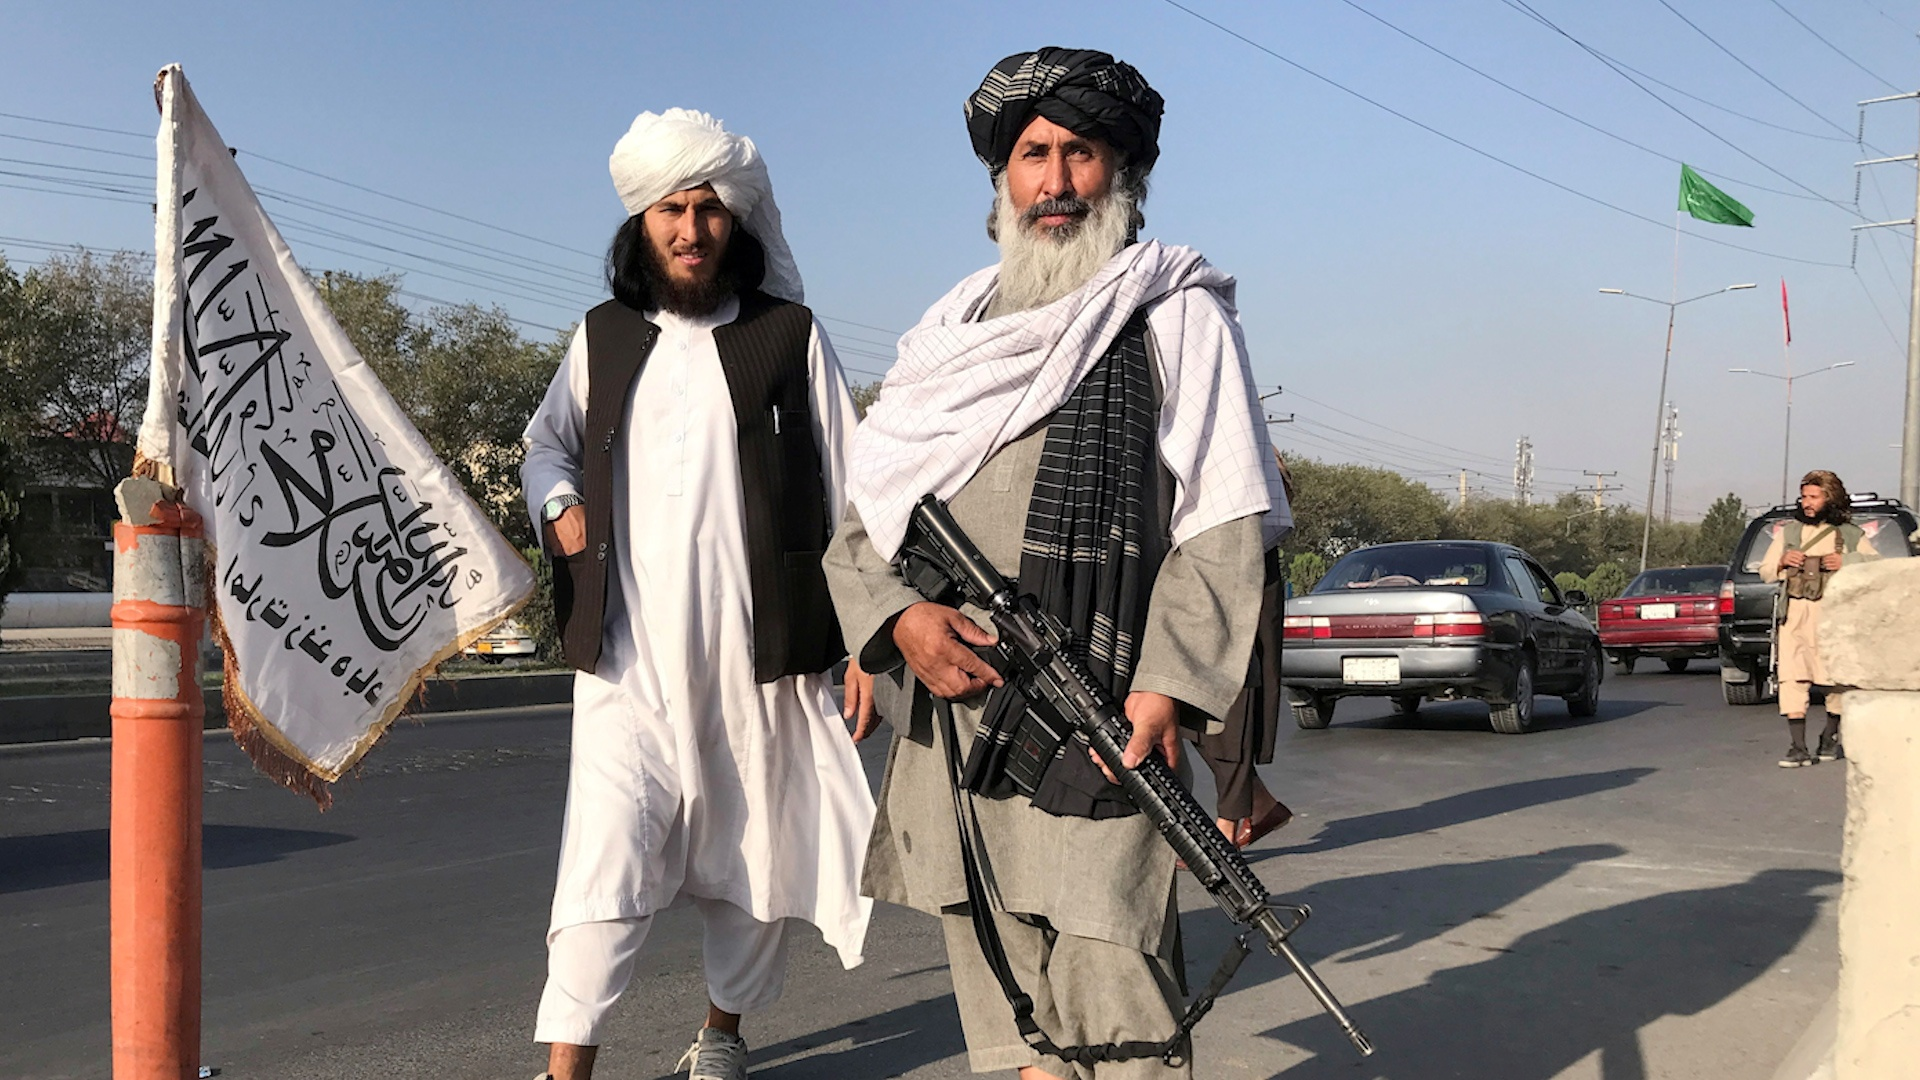 Taliban troops 'relaxed' playing tramcars, swings in Kabul - photo 2